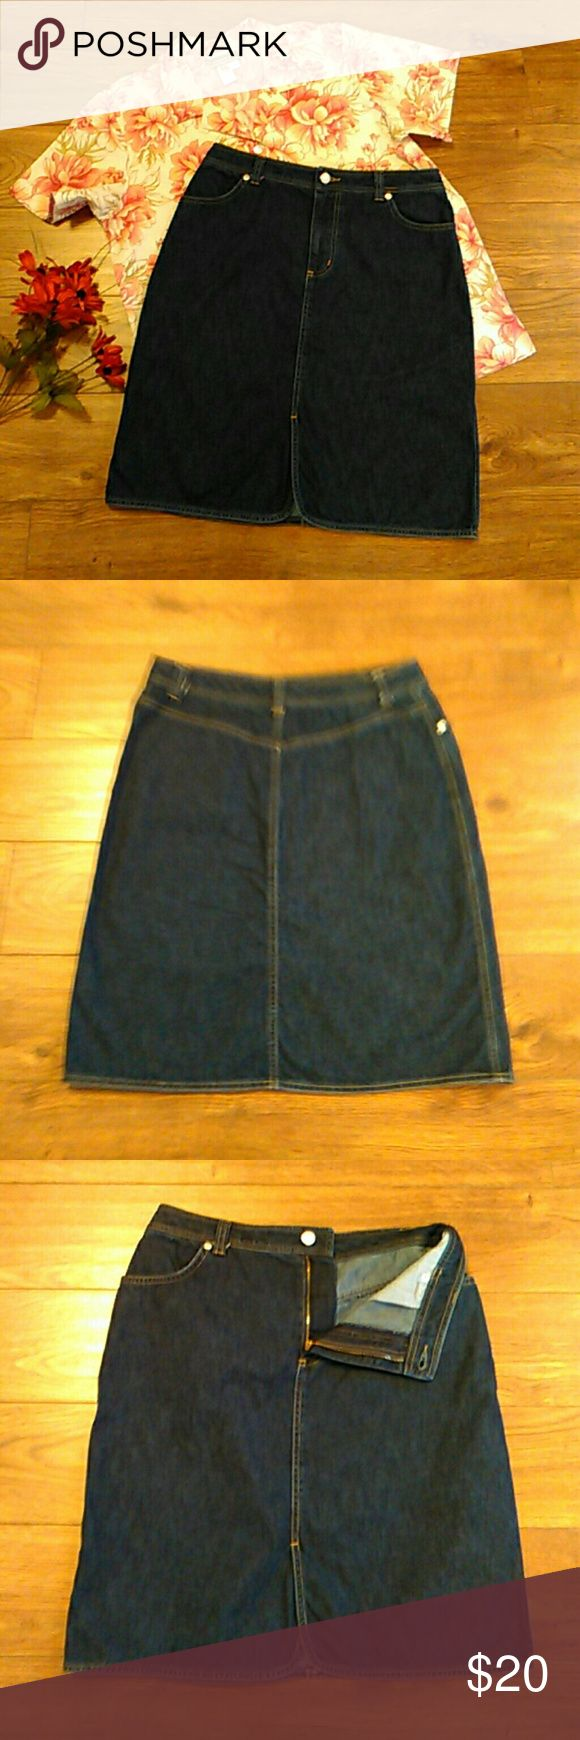 """Lands End Vintage Denim Jean Skirt Size 8 Lands End Vintage Denim Jean Skirt Size 8  2 Pockets  Button With Zipper Closure.  Rounded Factory Split Vent In Front  100% Cotton  Aprox Measurements Taken Flat  Waist: 15""""(30 )  Length: 20.5""""  In Pre-Owned Condition With No Stains Or Holes.  Smoke and Pet Free Home  Please Check Out My Other Items.                   #183 Lands' End Skirts A-Line or Full"""